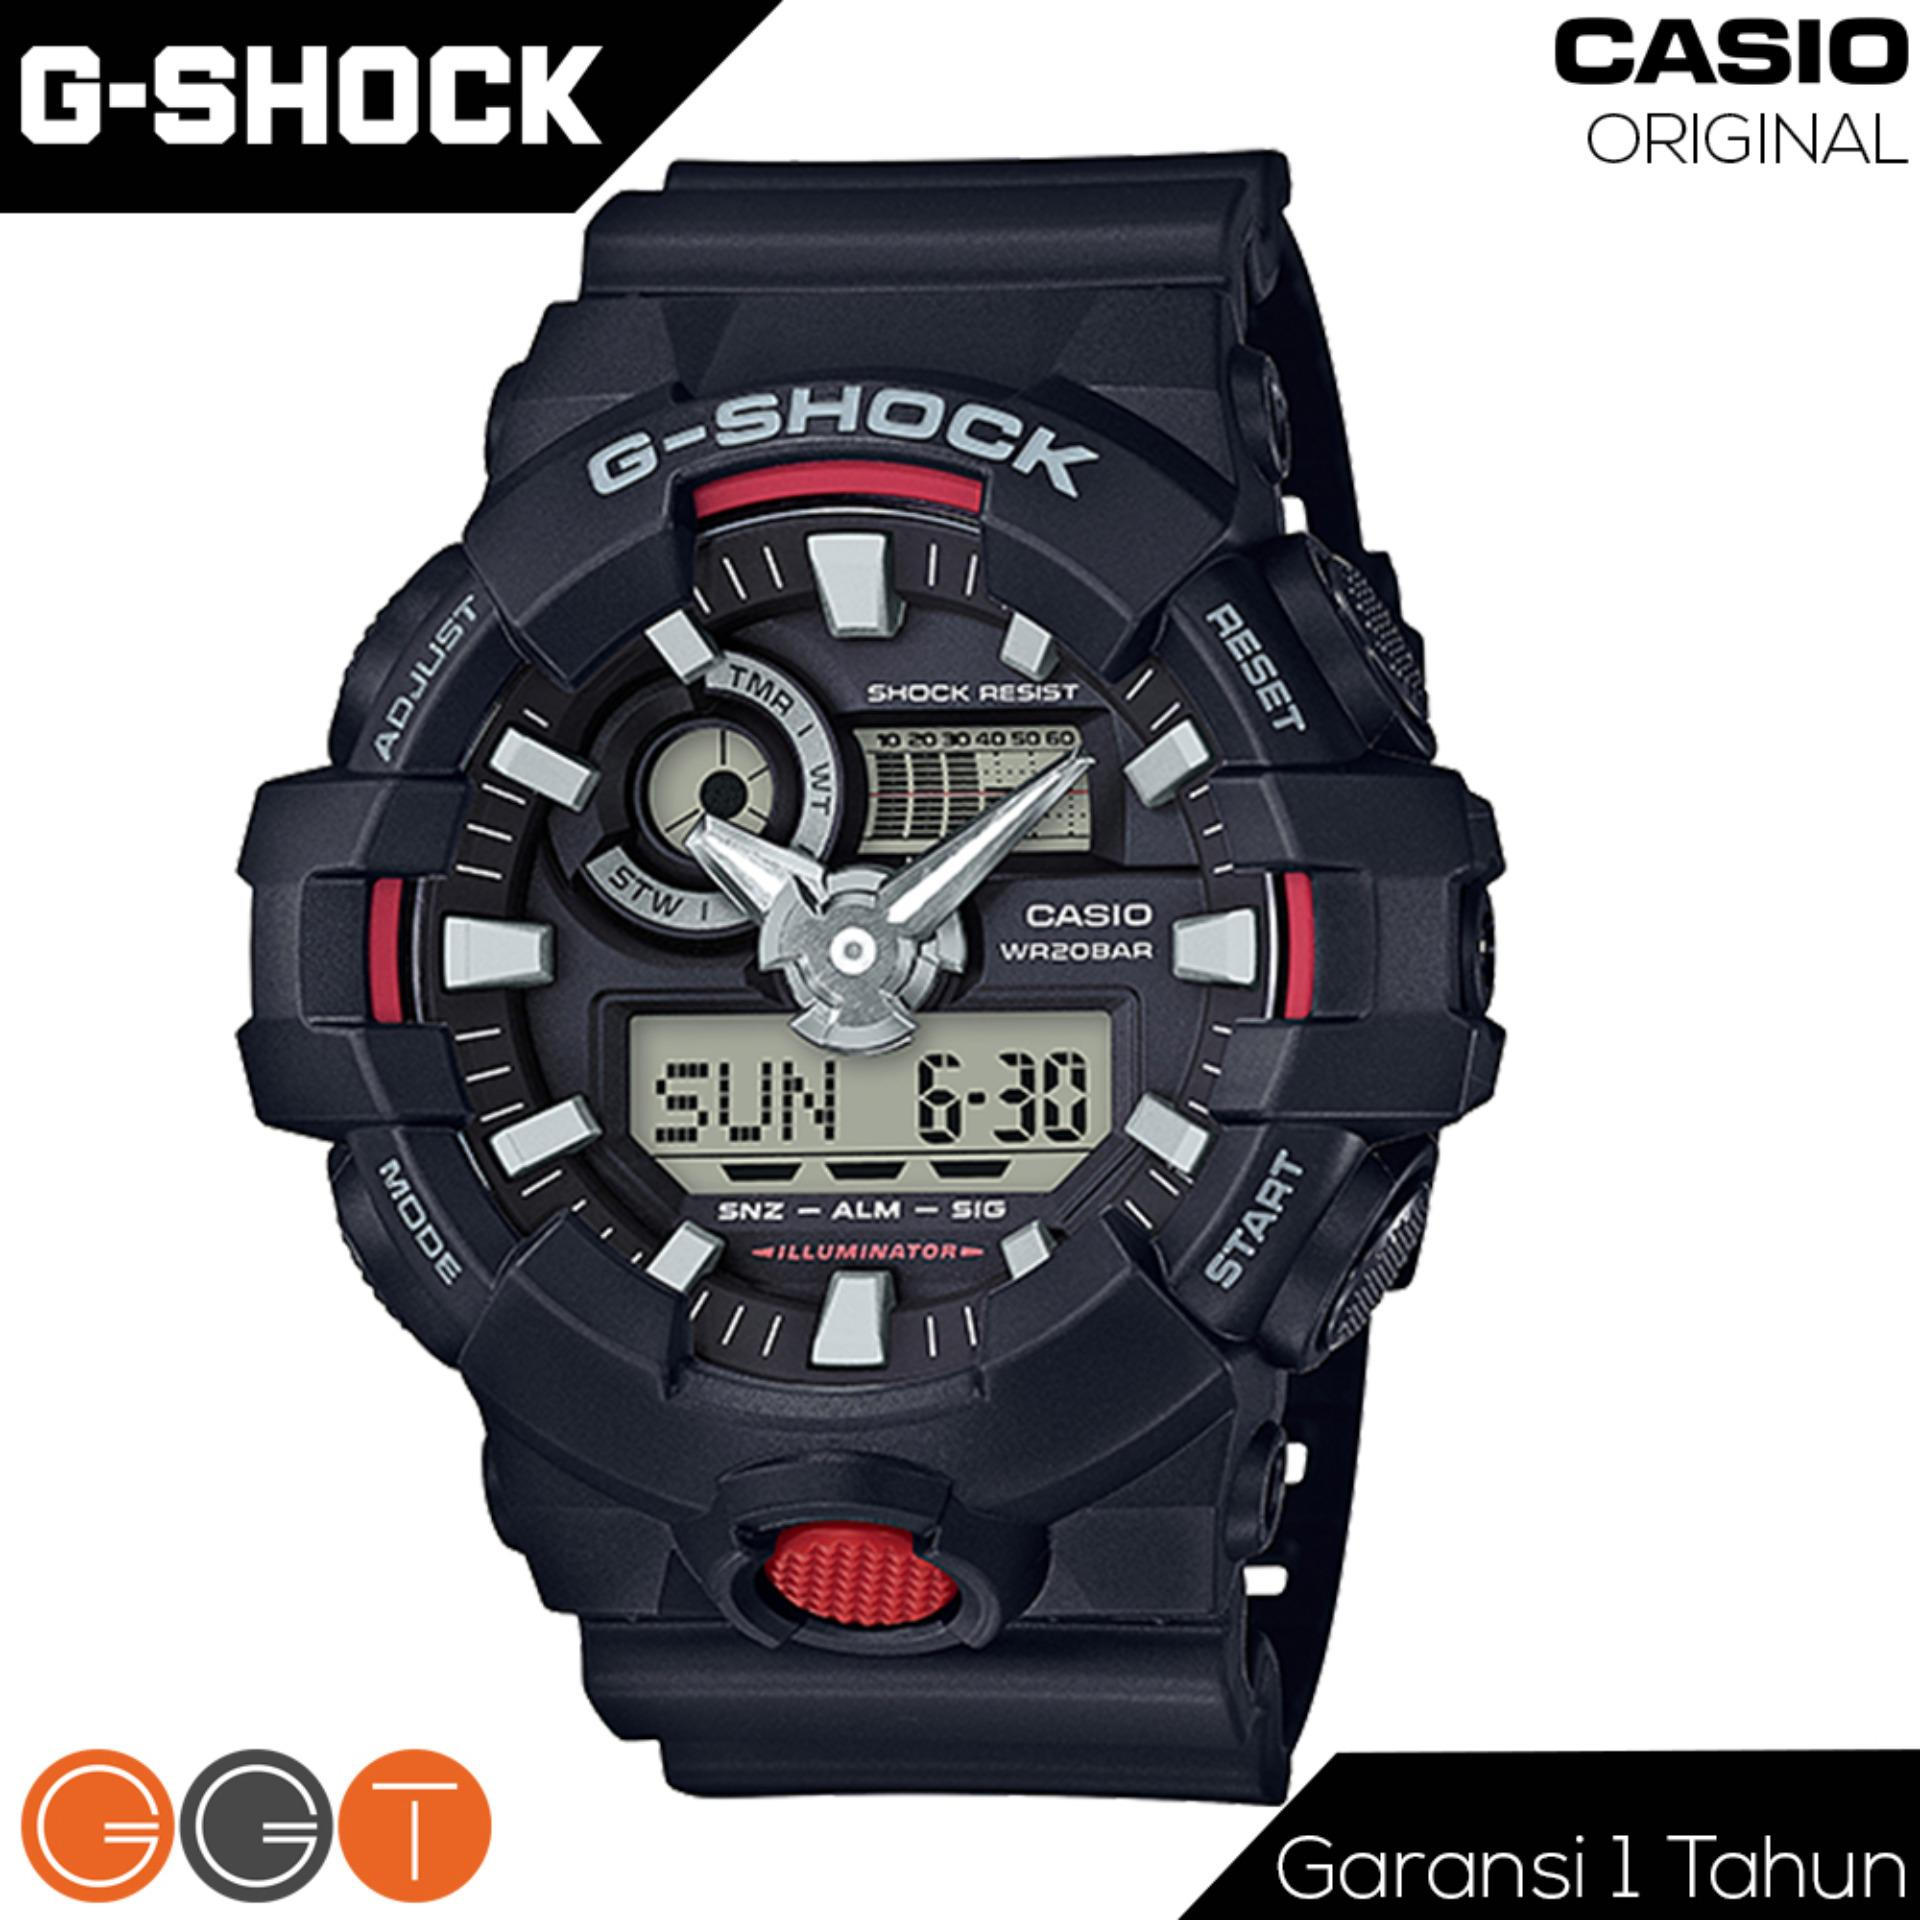 Spesifikasi Casio G Shock Dual Time Resin Starp Quartz Movement Jam Tangan Pria Ga 700 1A Red Casio G Shock